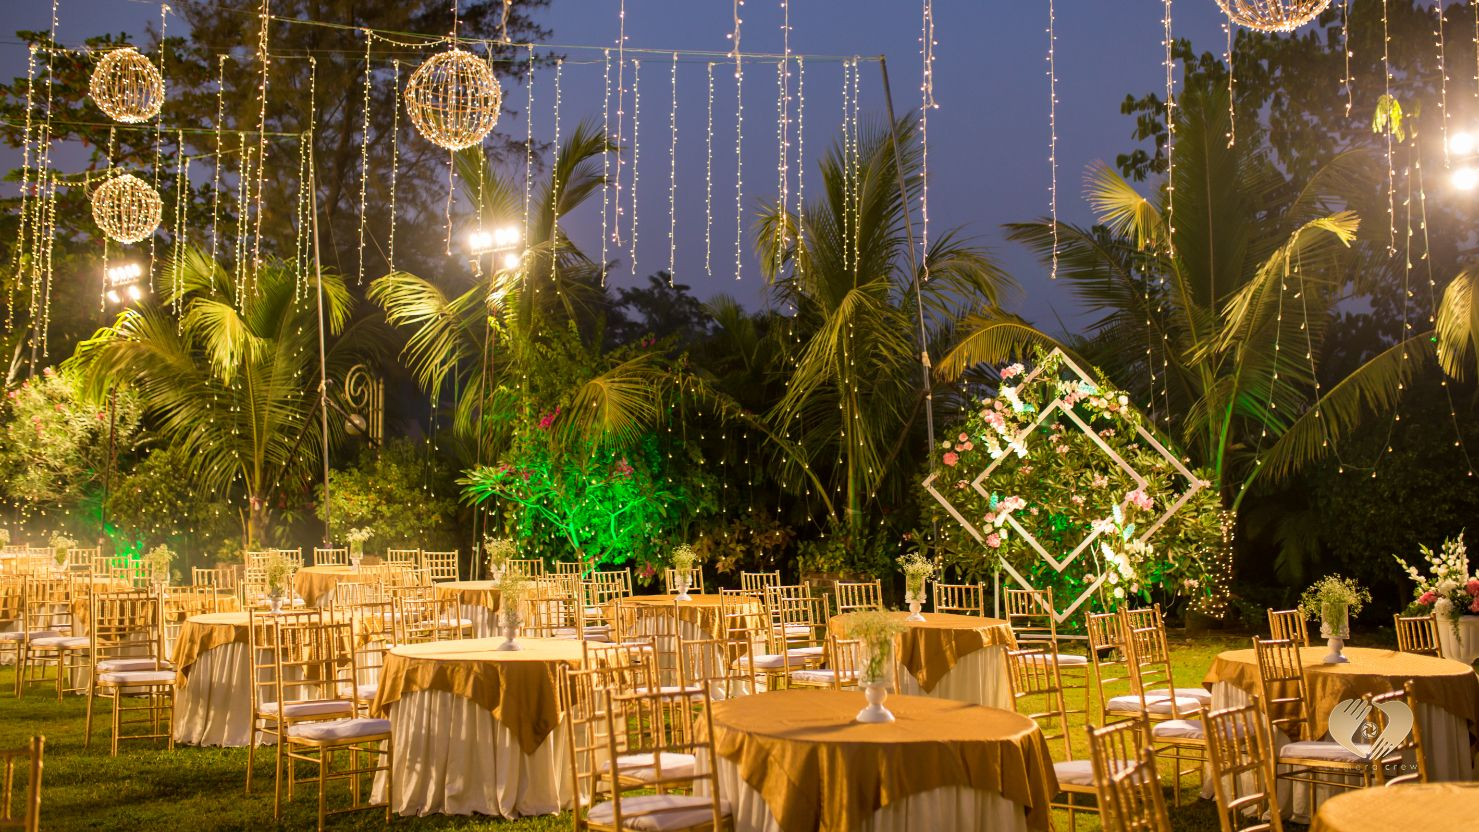 Fairy Lights & Flowers Outdoor Seating Decor